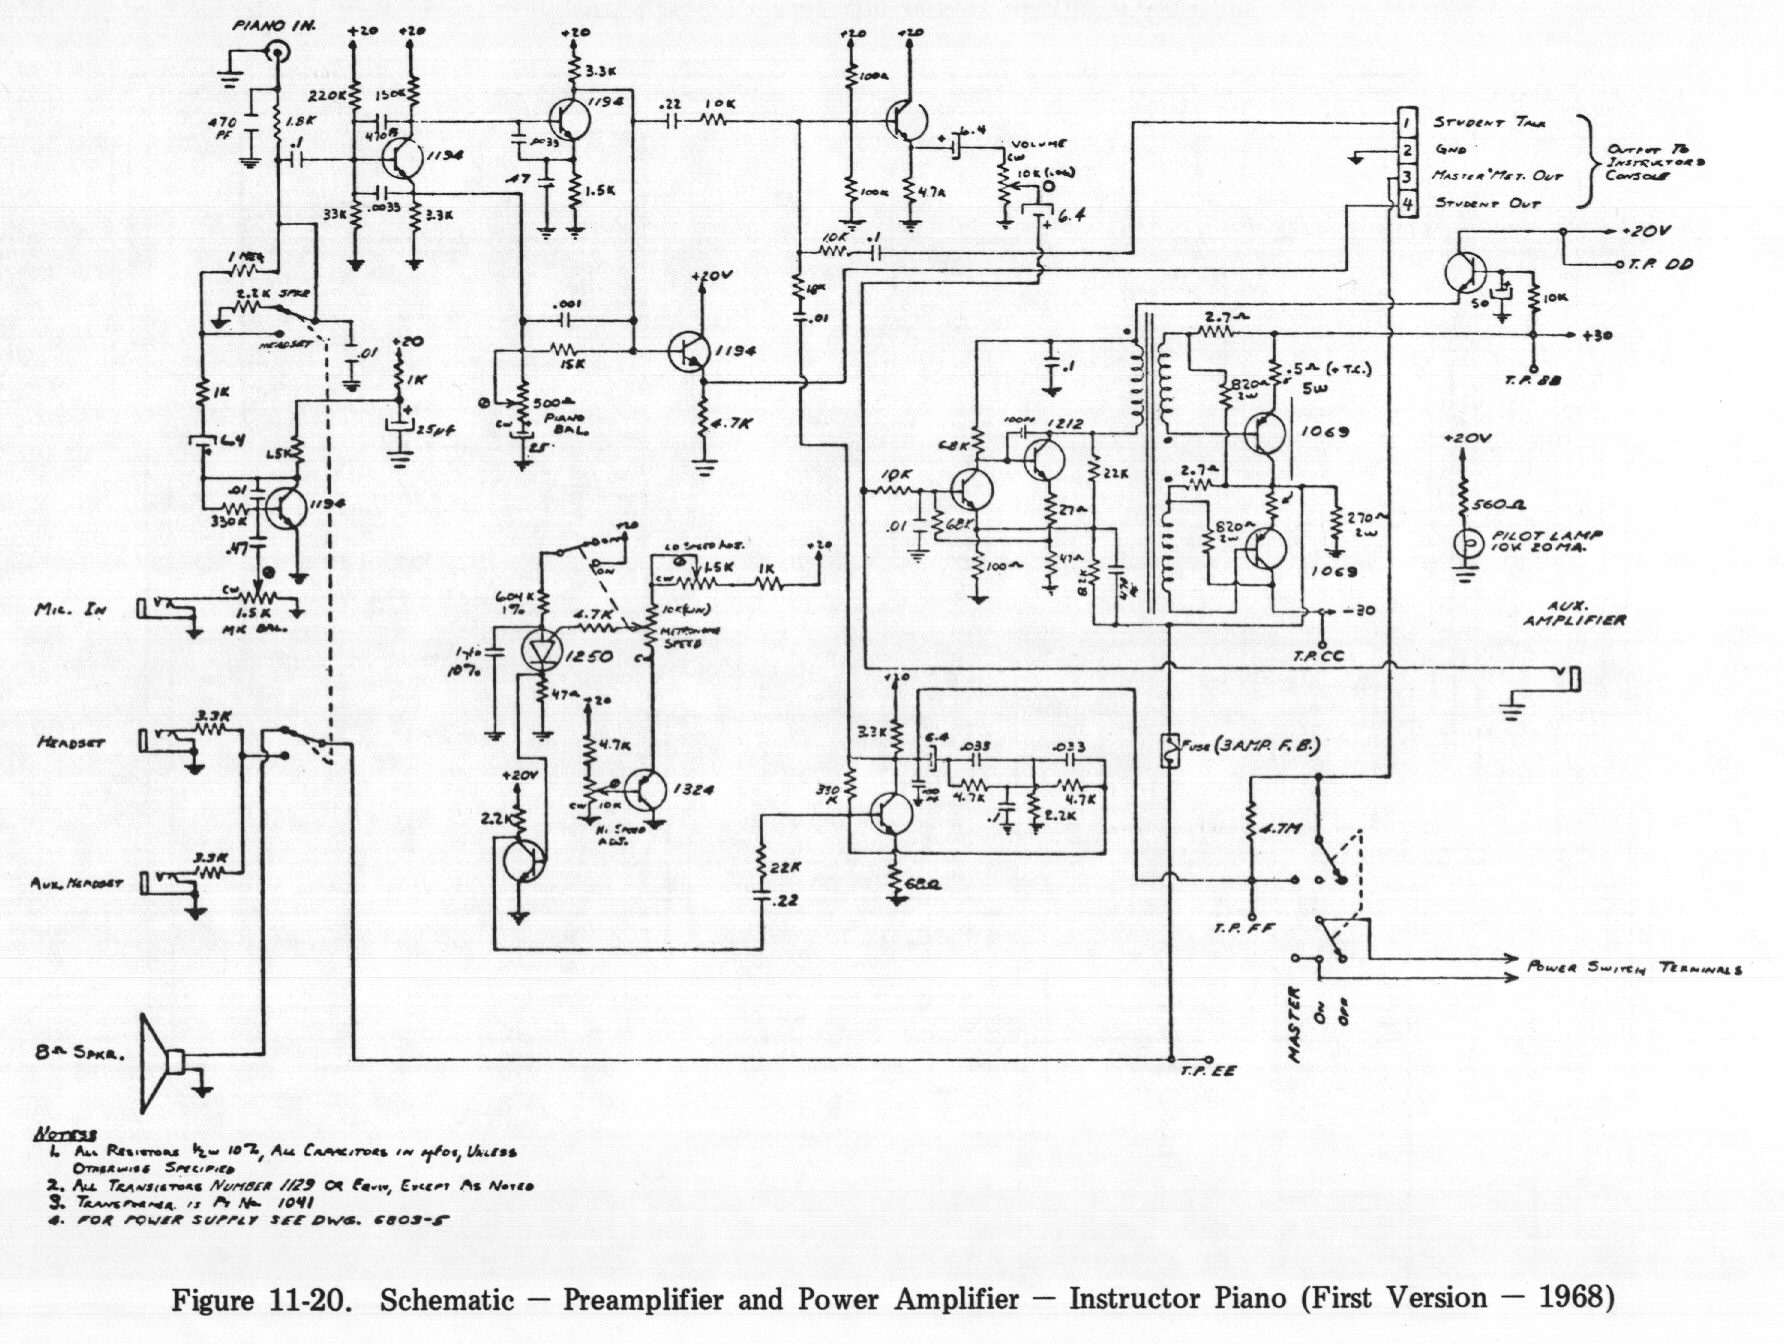 Chapter 11 Diagrams Schematics And Pictorials Design Schematic Preamplifier Power Amplifier Instructor Piano First Version 1968